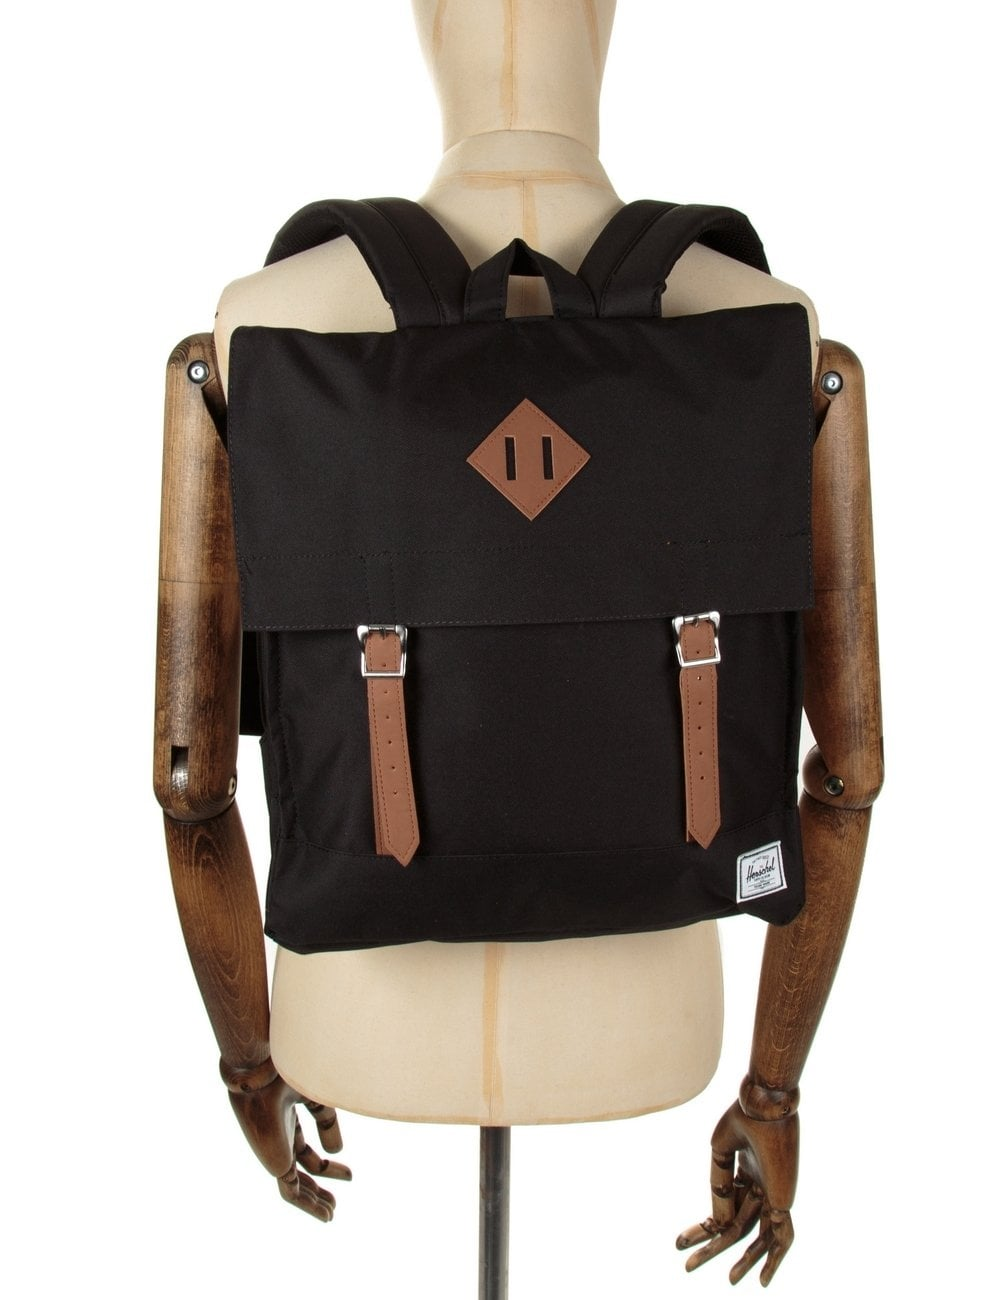 aea7bef69d Herschel Supply Co Survey Backpack - Black Tan - Accessories from ...